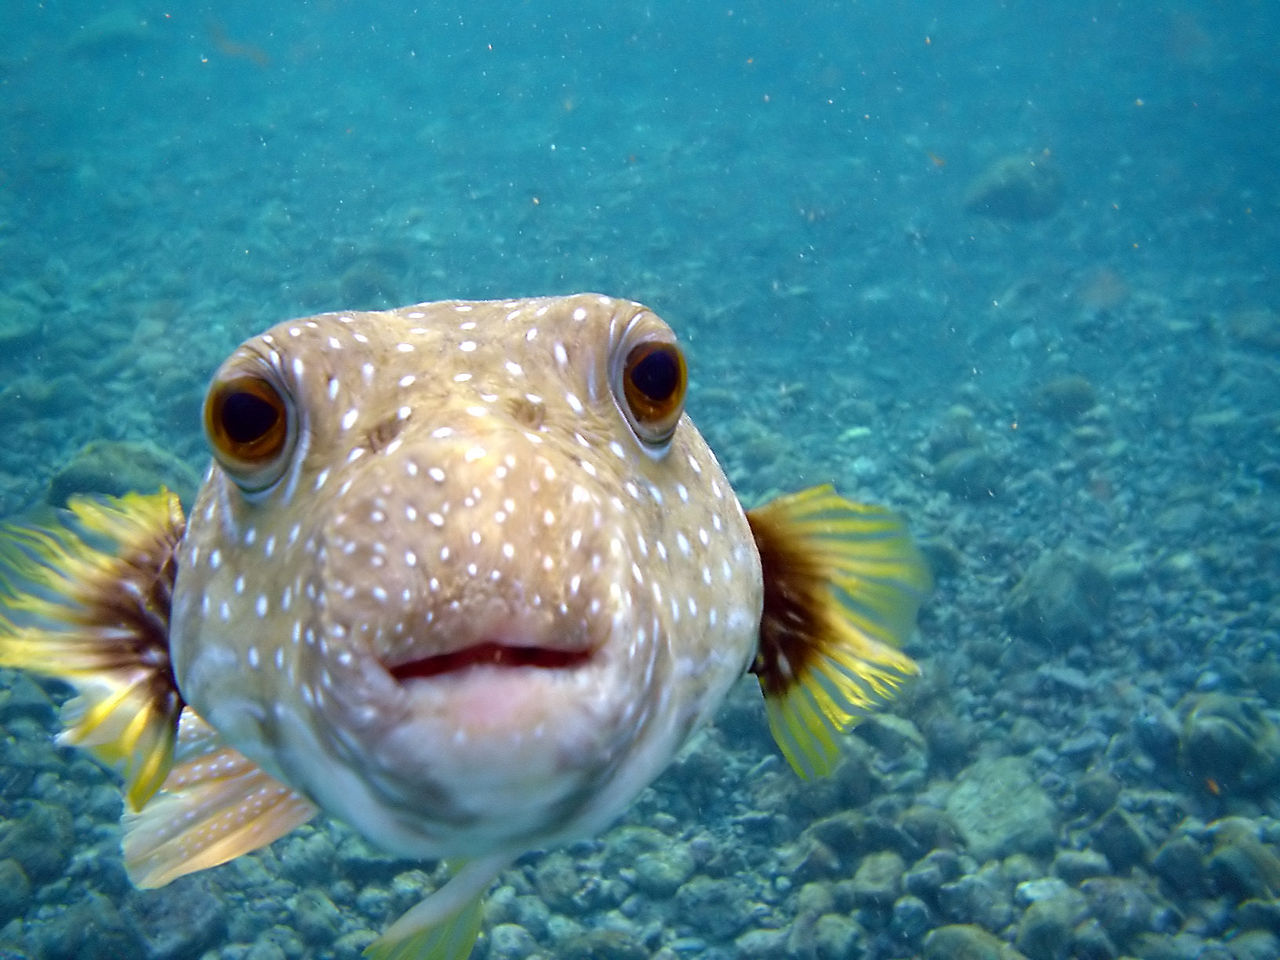 1280px-Arothron_hispidus_is_kissing_my_camera_at_Big_Island_of_Hawaii